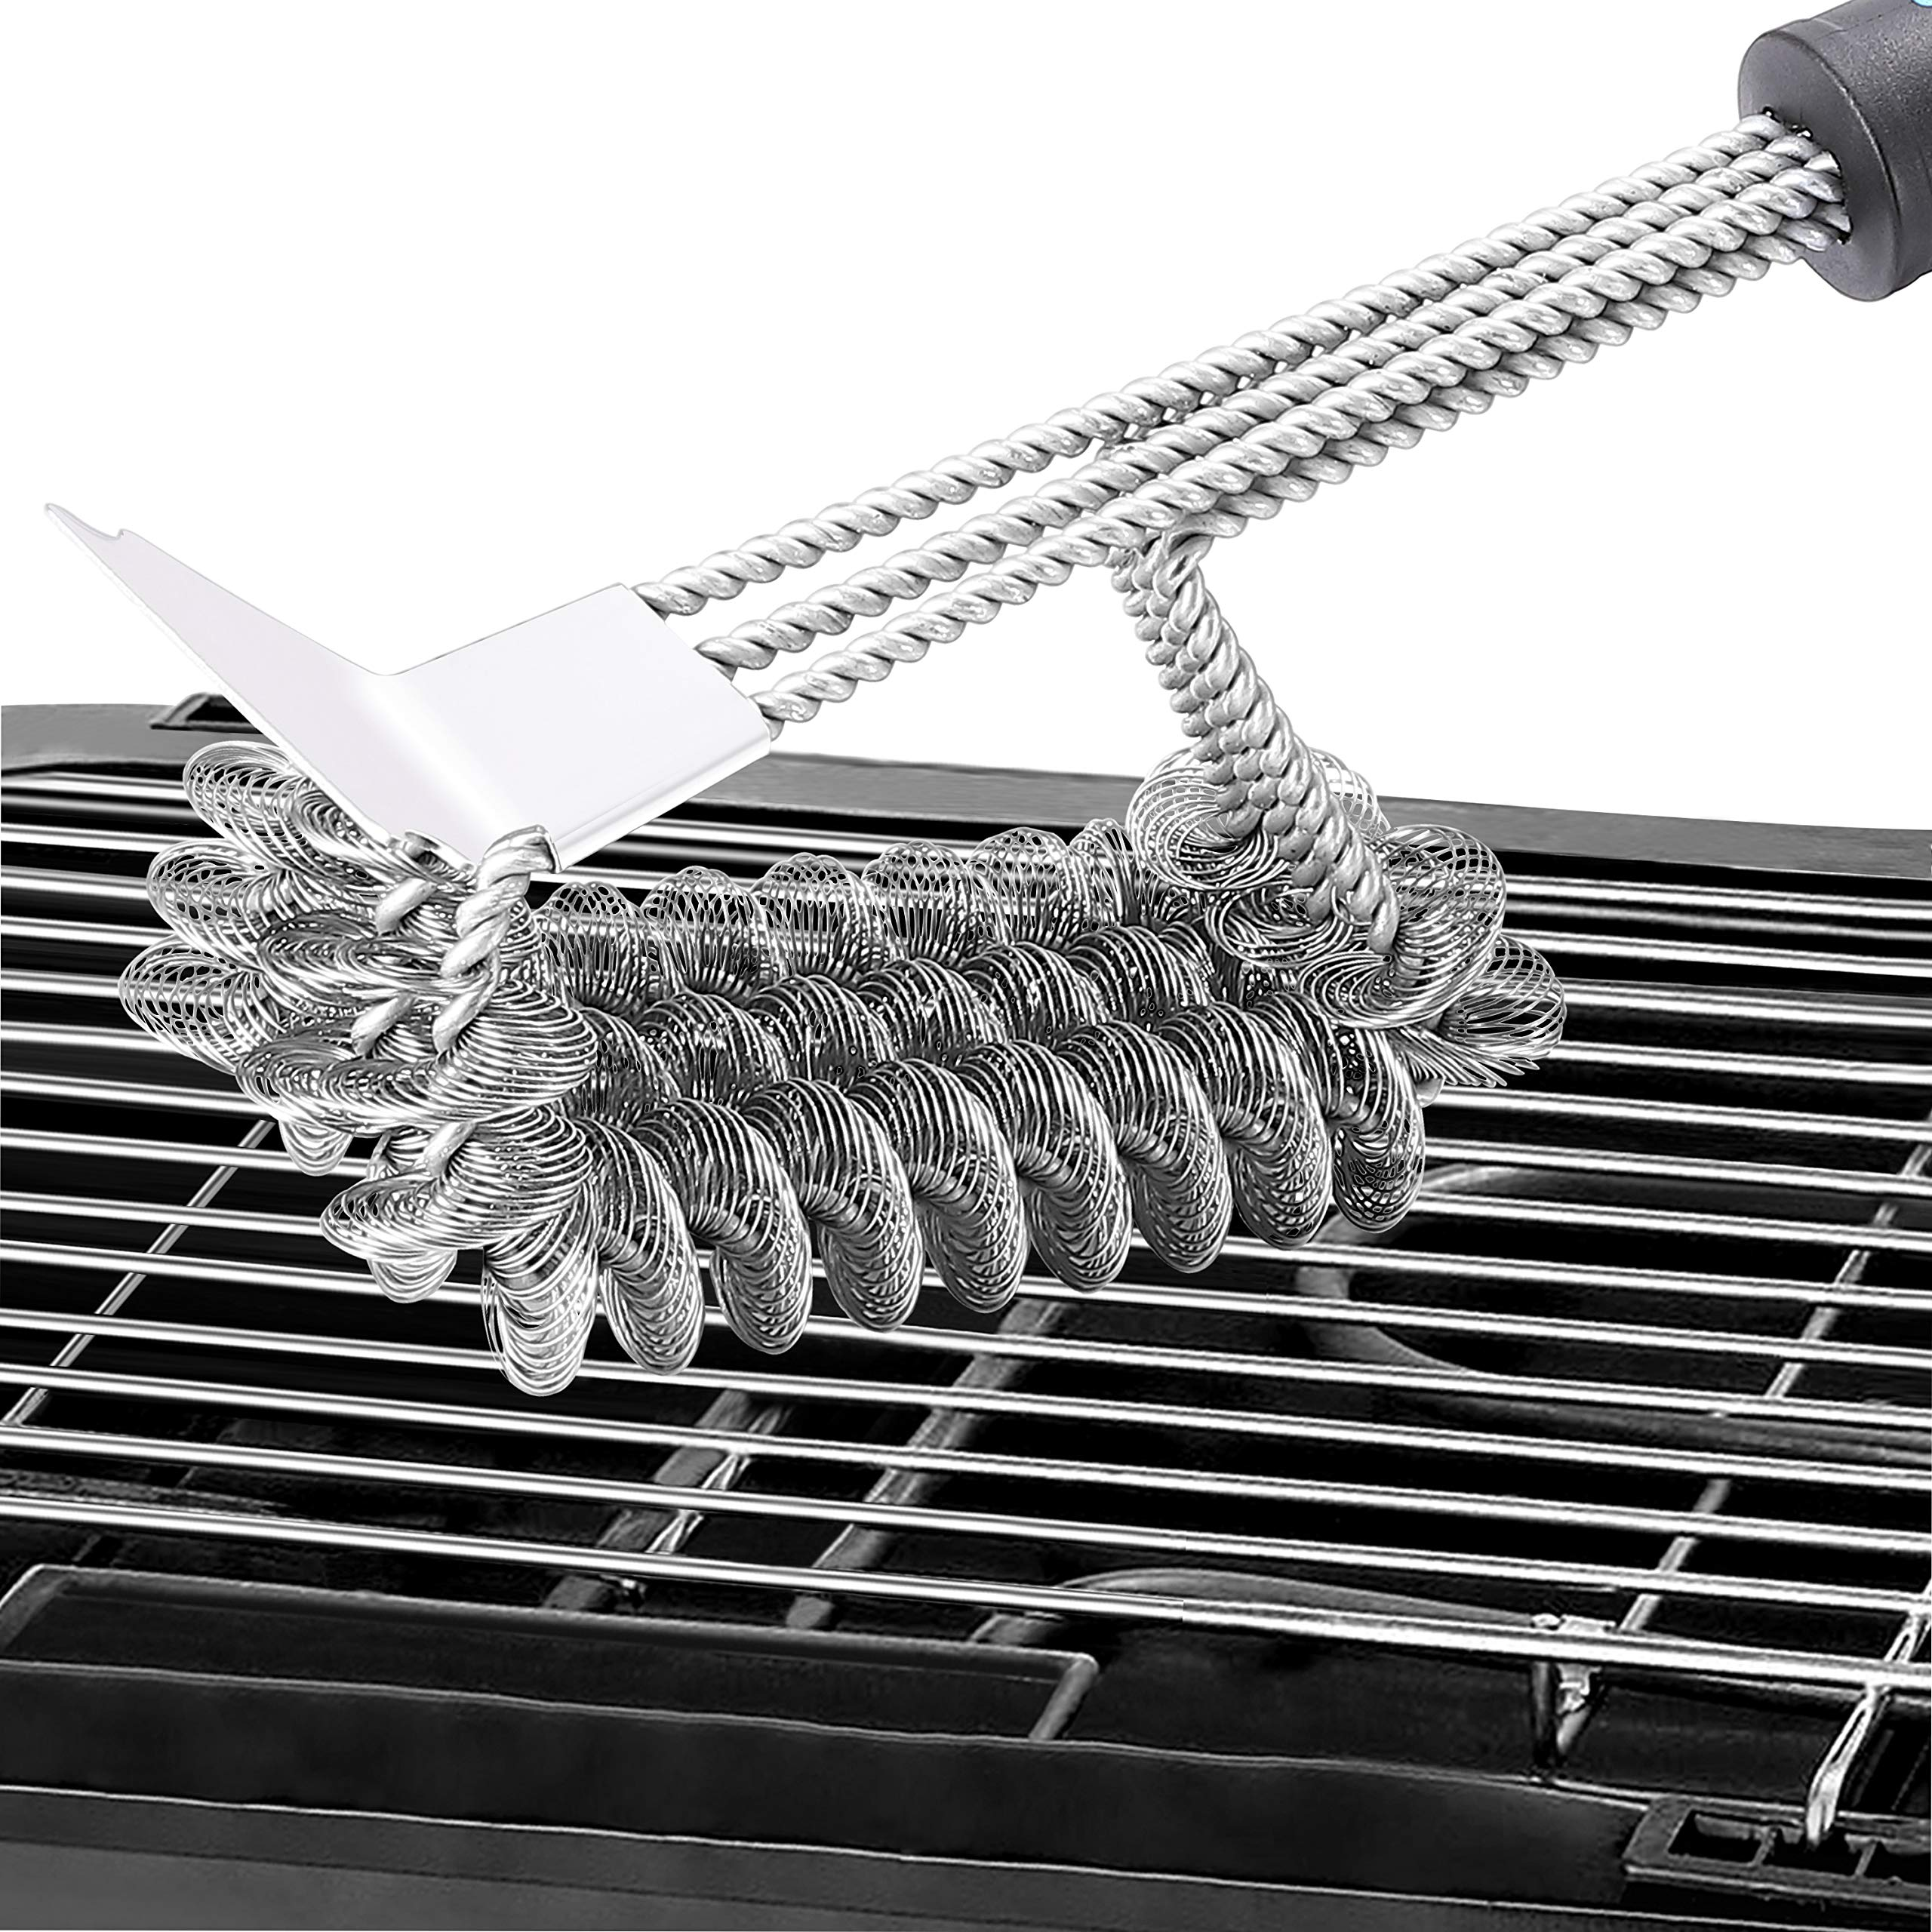 """CHbaby-Home Grill Brush Bristle Free - Stainless Steel Brush with 18"""" Handle for Porcelain Ceramic Iron or Steel Grills - Built in Scraper and Rust Resistant"""